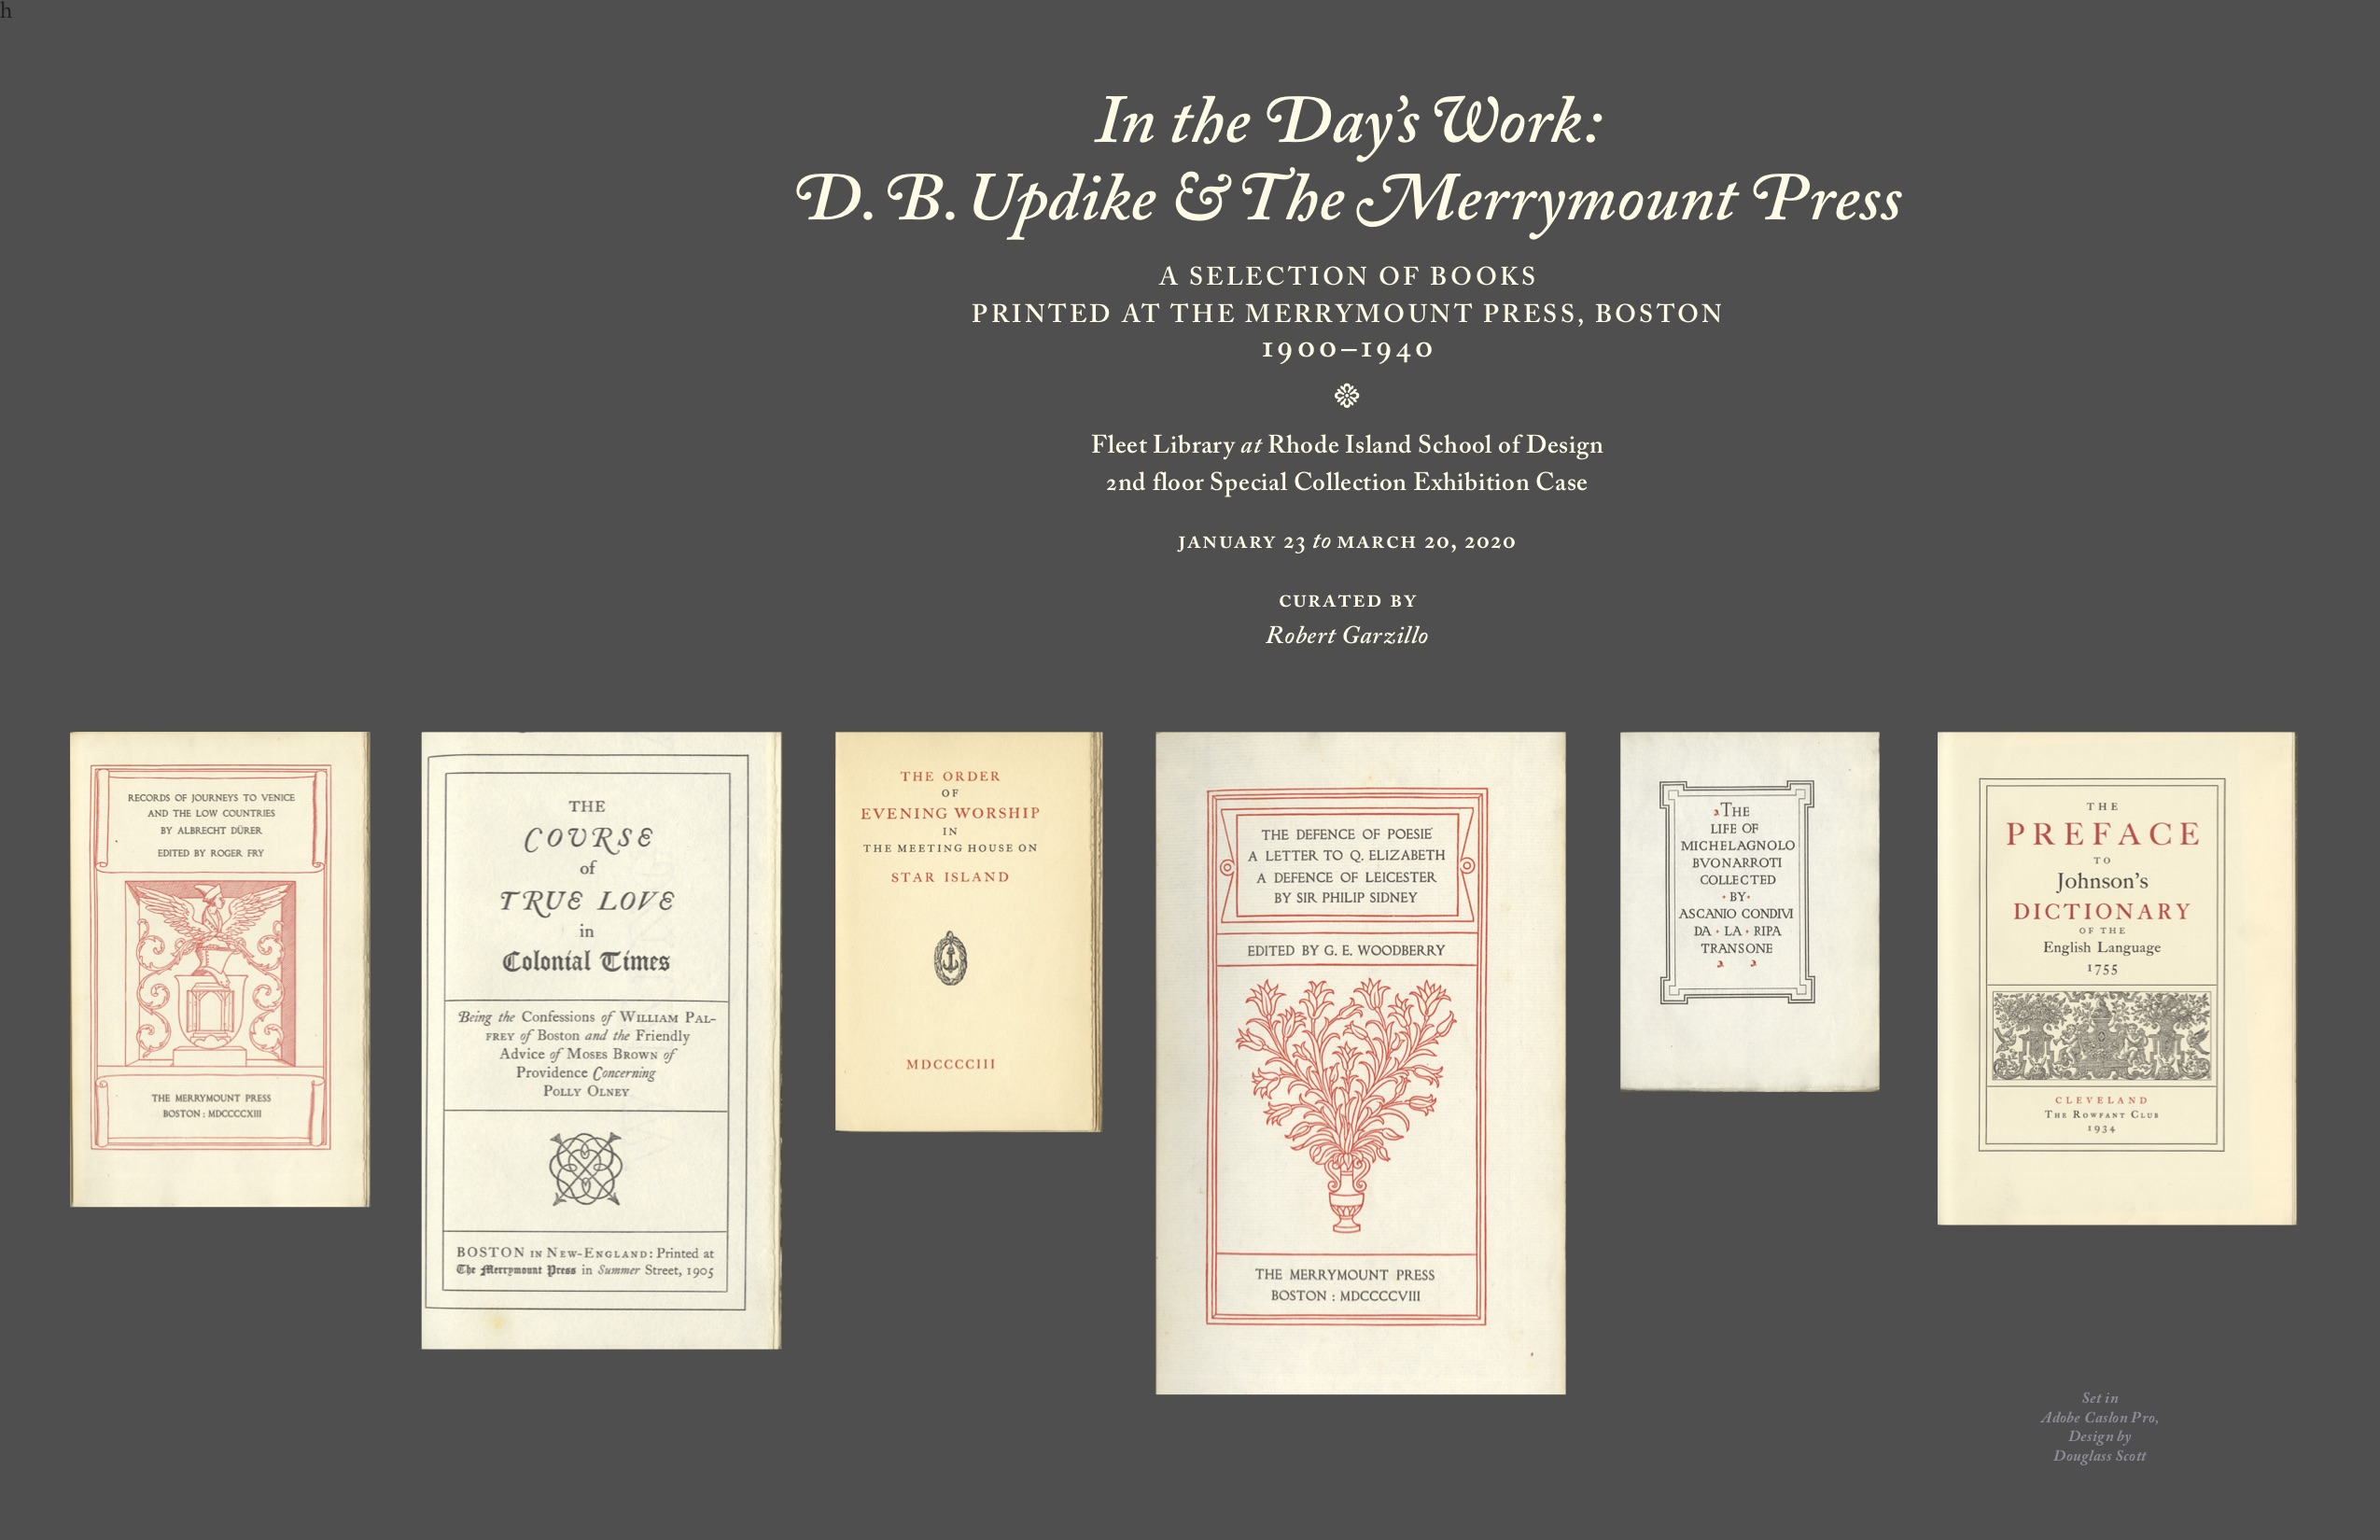 In the Day's Work: D. B. Updike & the Merrymount Press